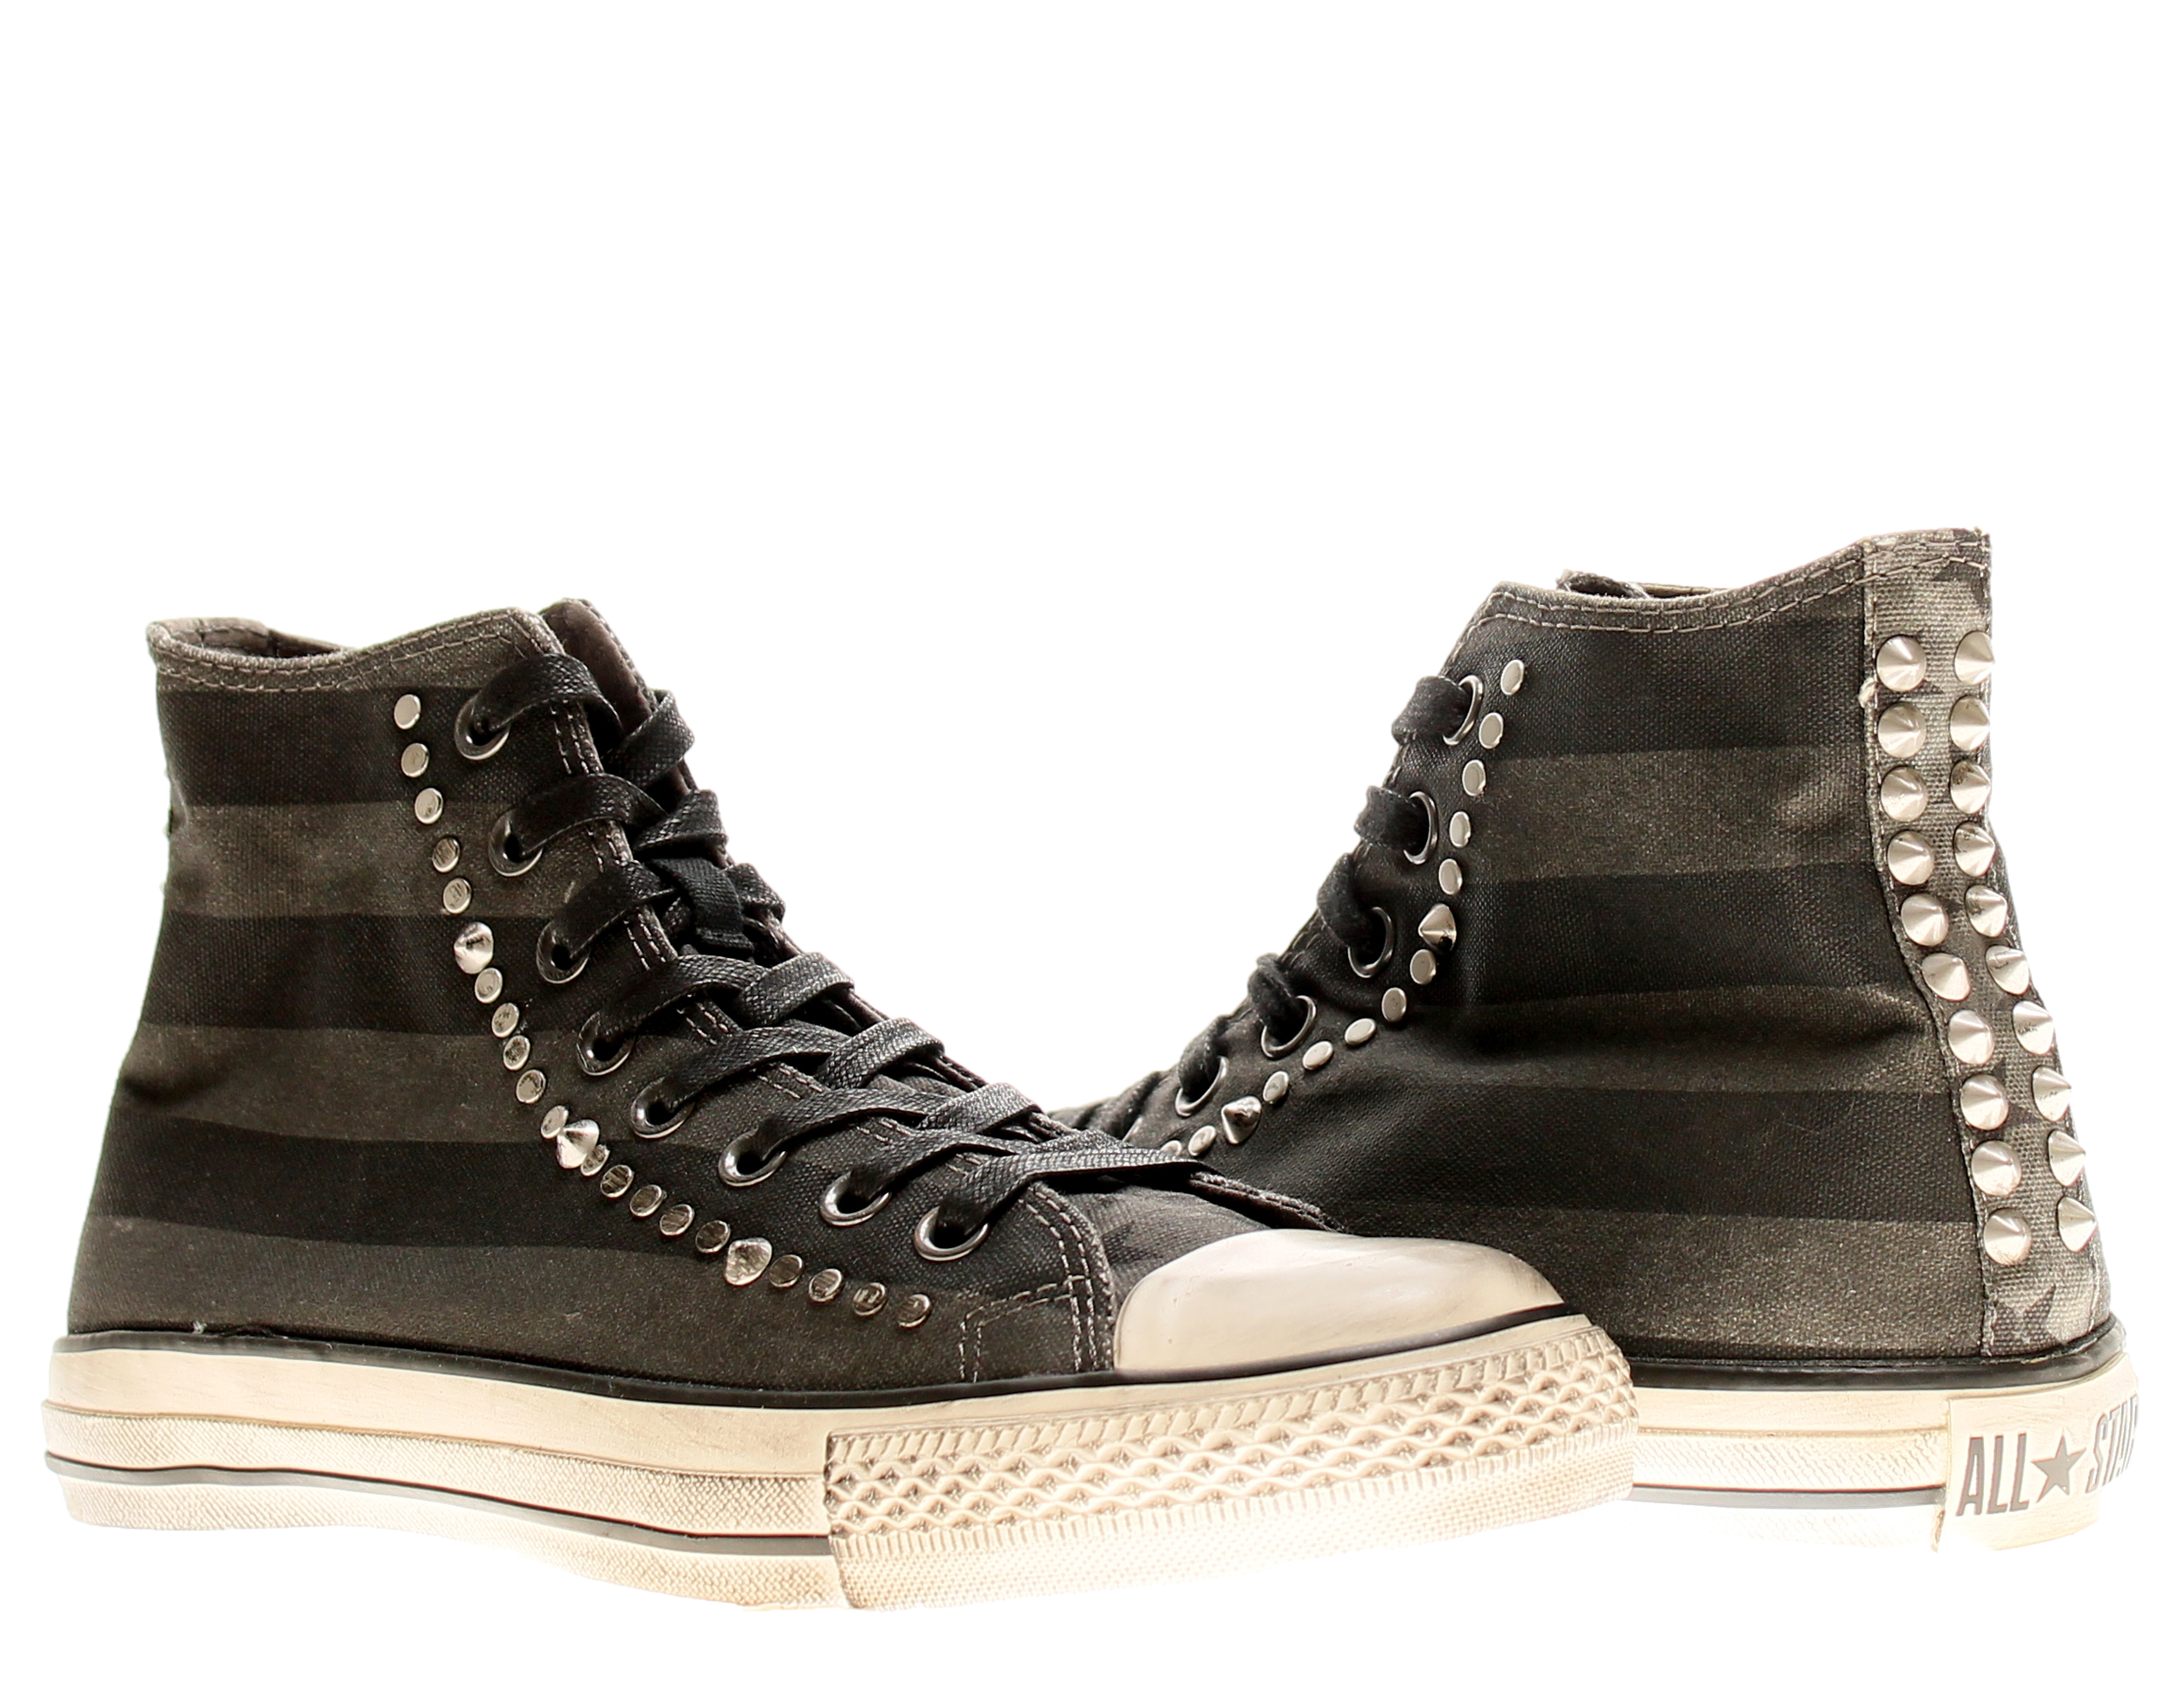 e3d41ca3ae0162 ... amazon converse chuck taylor all star x john varvatos black studded  high top sneakers e35d0 1726c